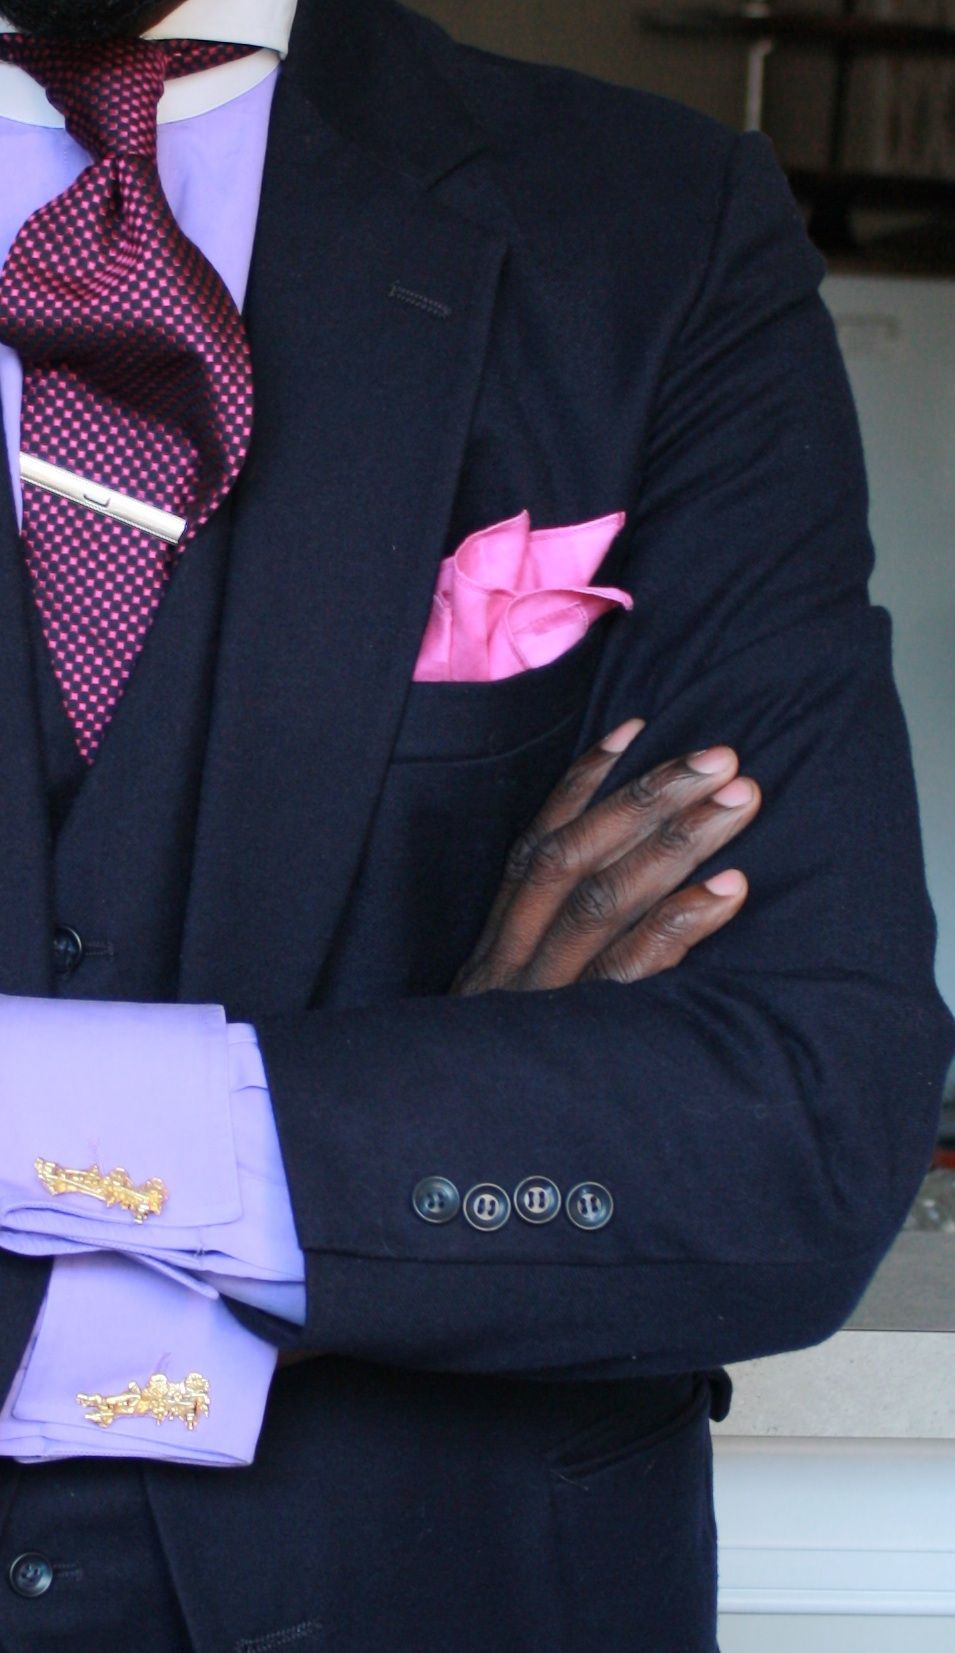 ab4fc83483d6f See how the tie stabilizes the light pink pocket square? Nice! #Aim2Win .